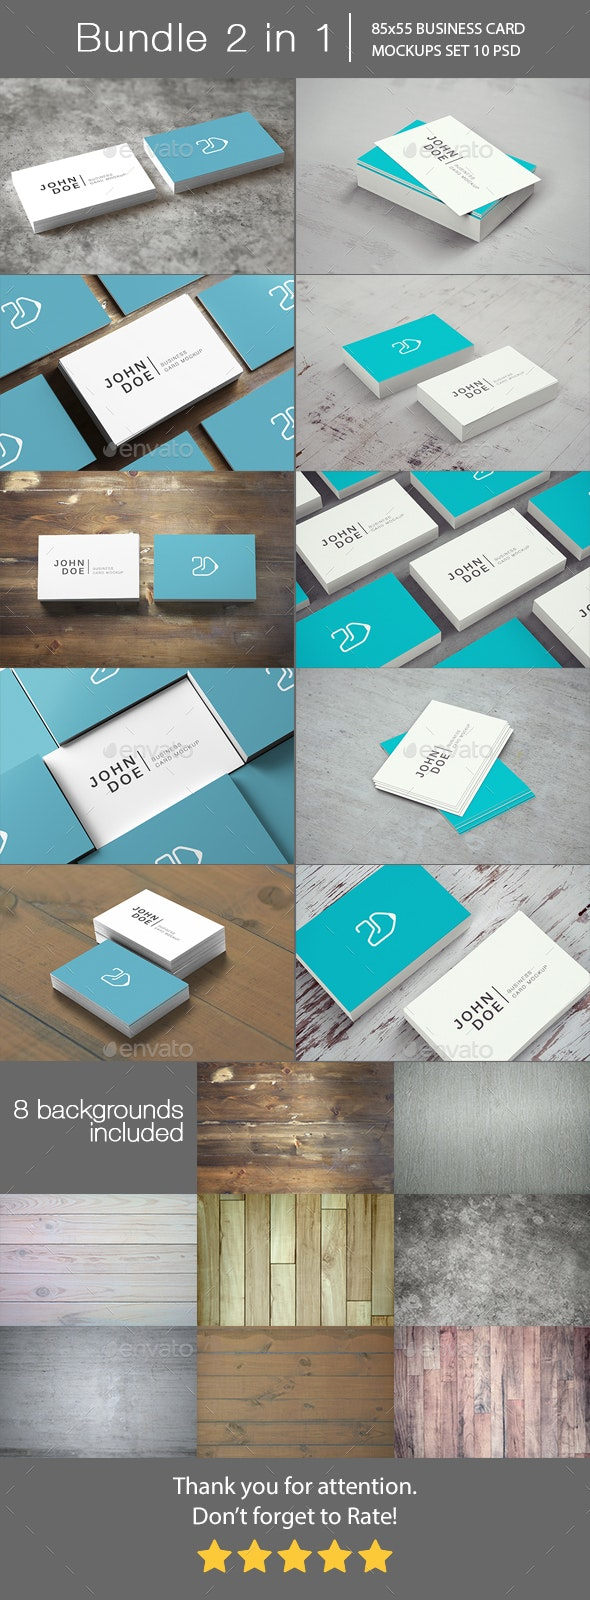 85x55 Business Card Mockup Bundle 2 in 1 - Business Cards Print